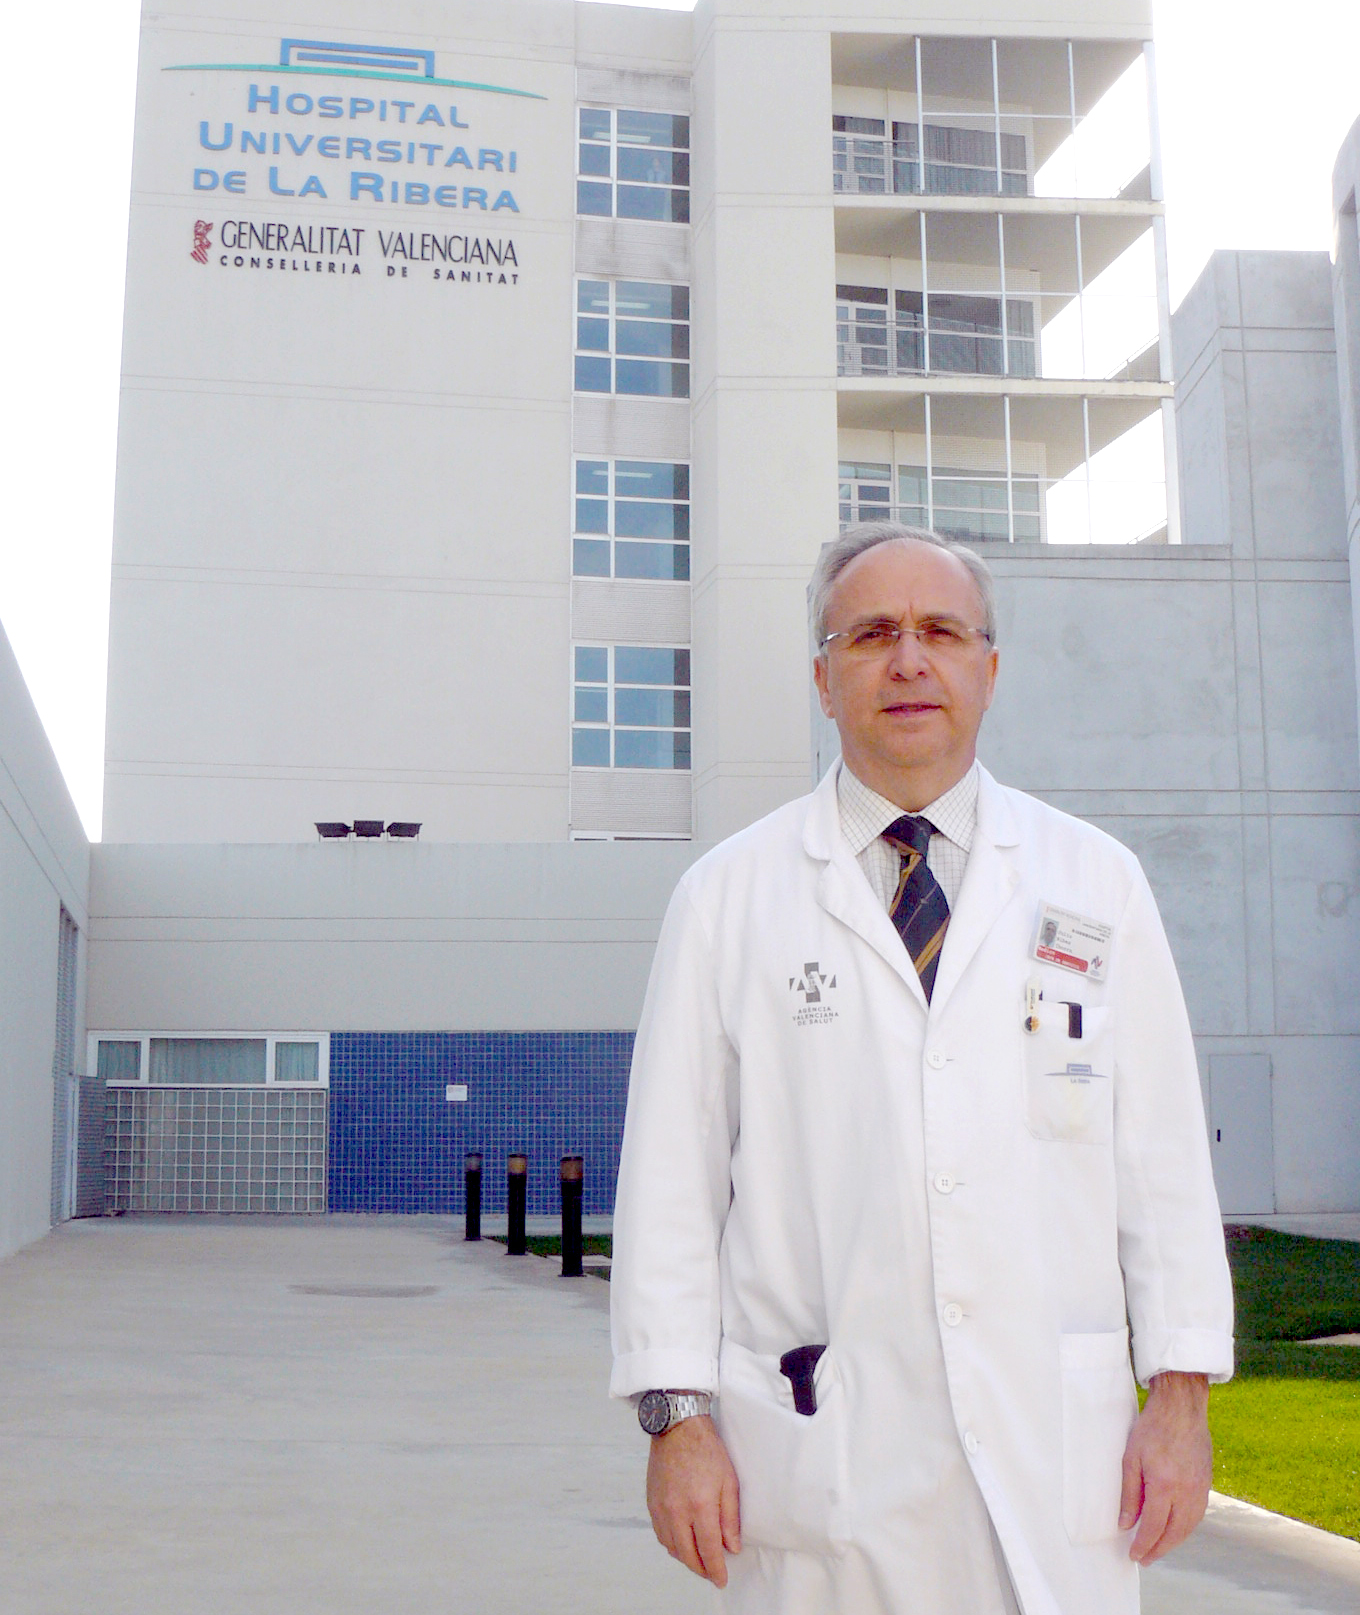 Dr. Julio Ribes